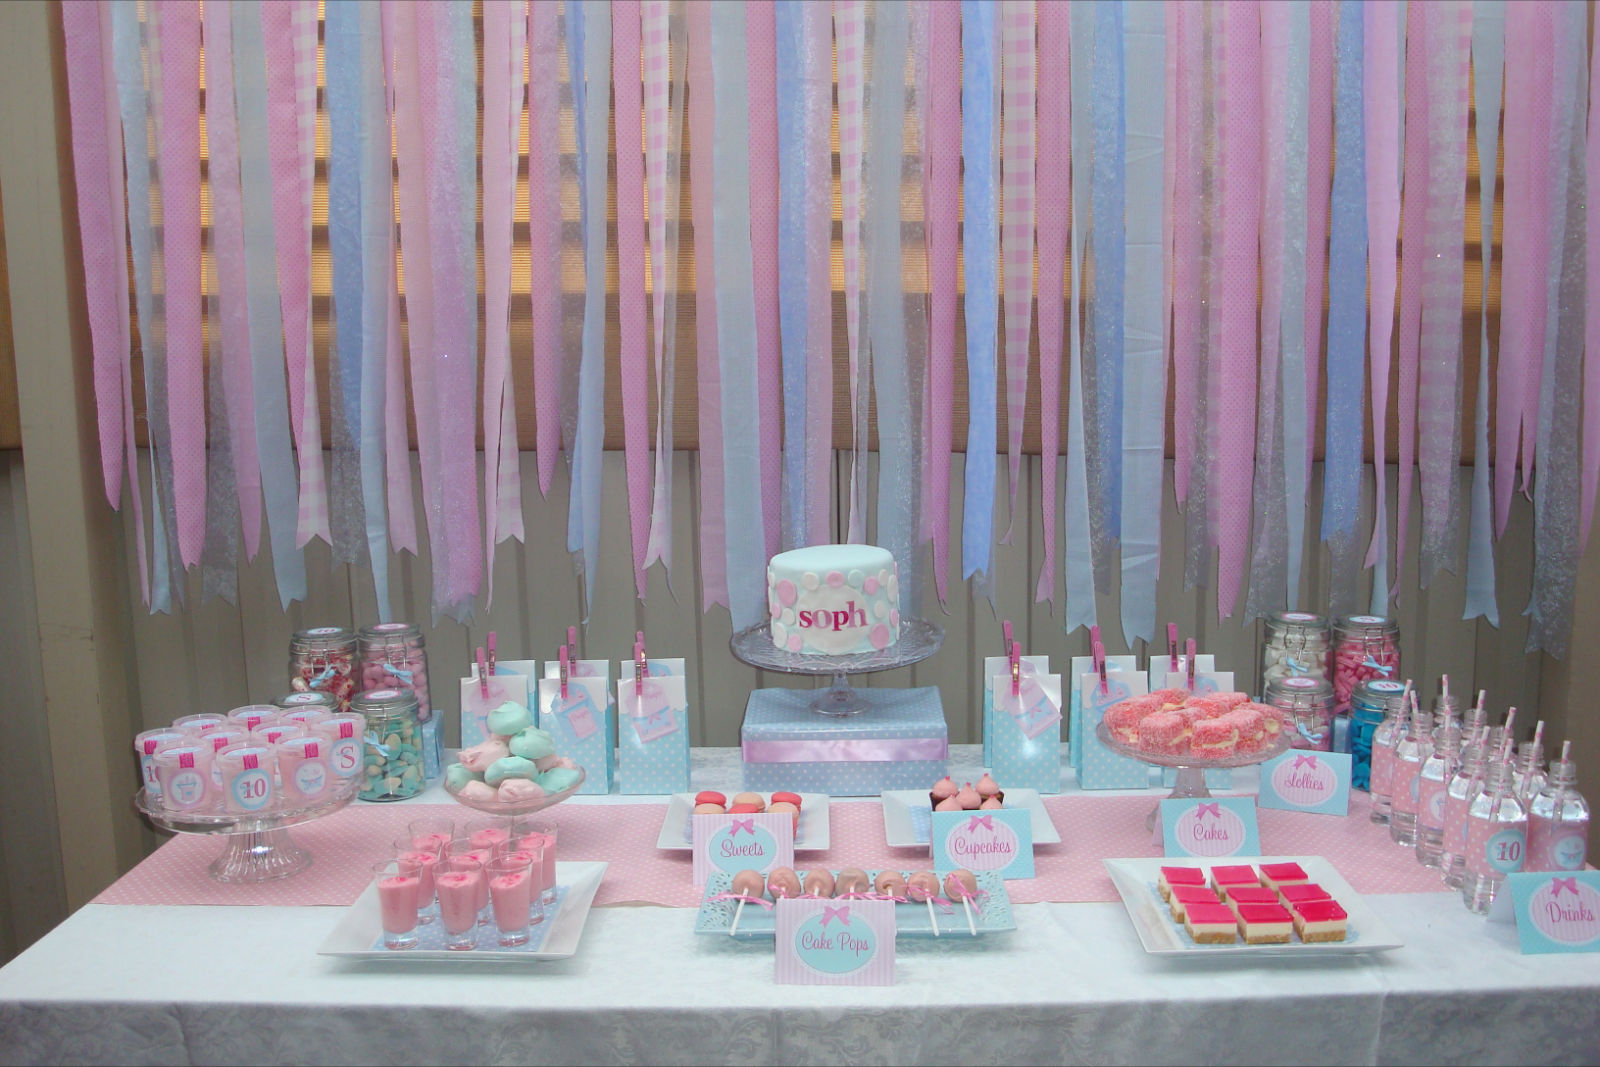 Pamper Party Cake Images : MON TRESOR: Sweet Table Contest Submission, Round 2